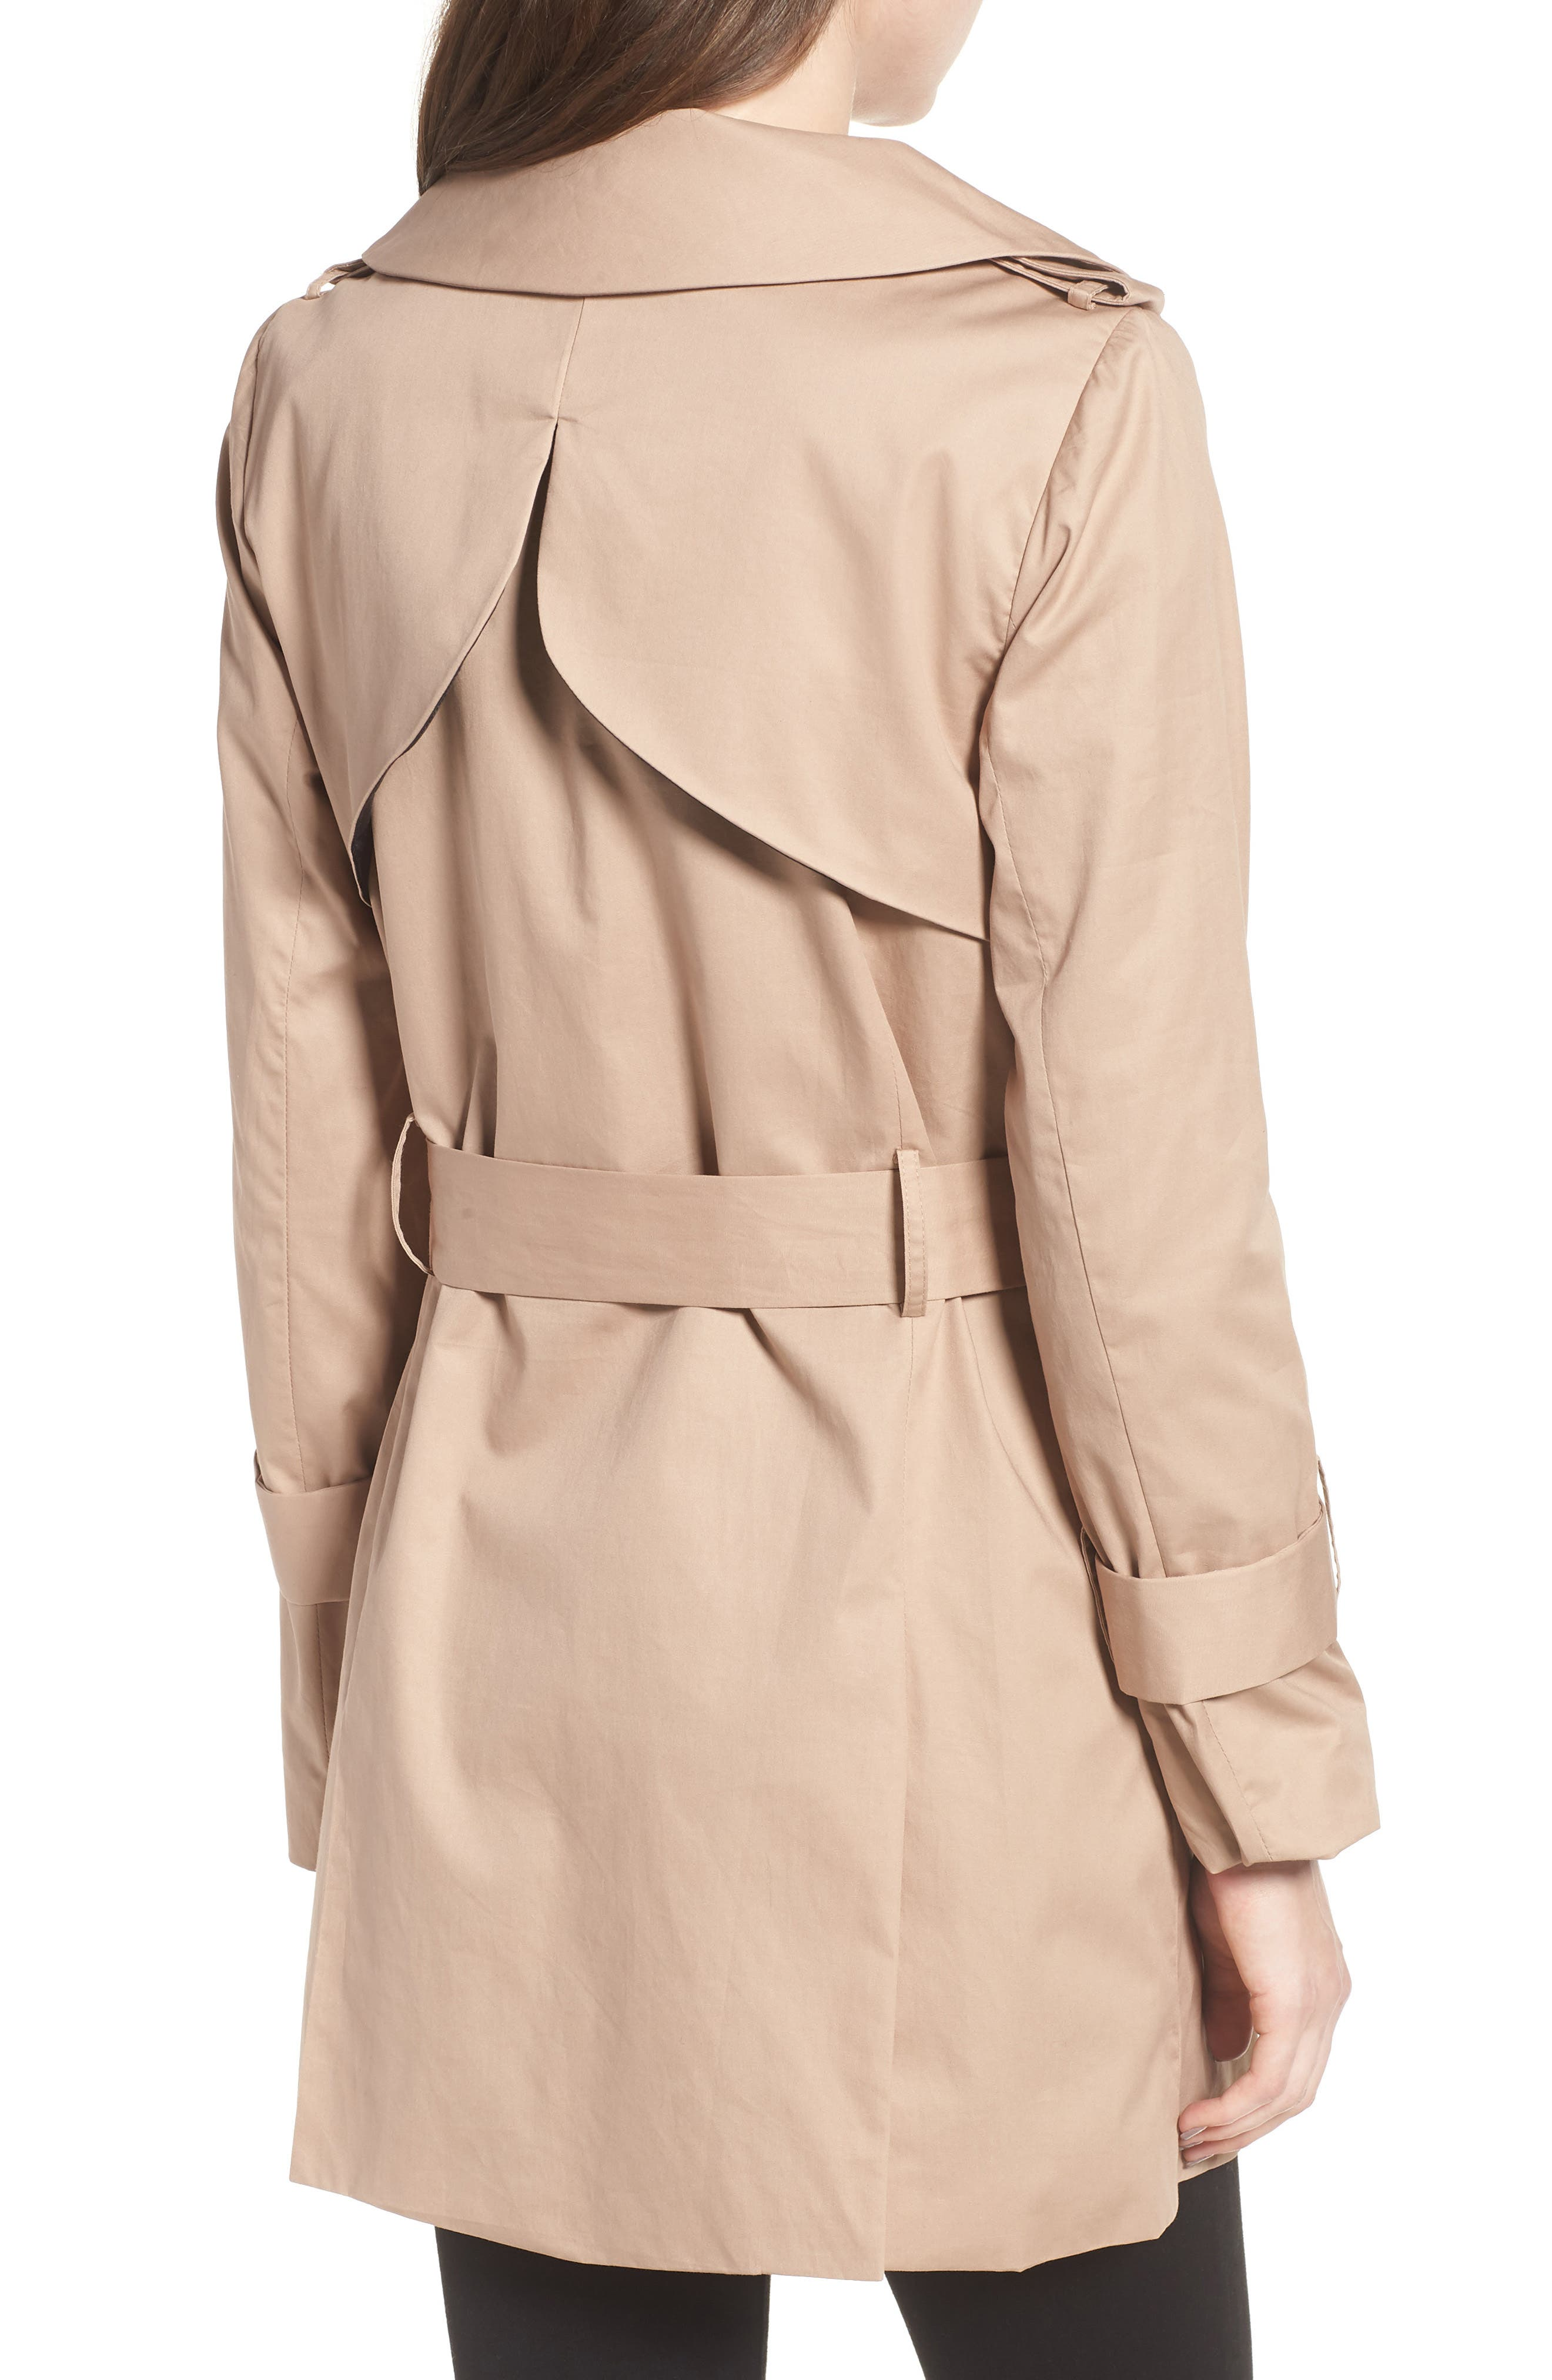 Moss Trench Coat,                             Alternate thumbnail 2, color,                             250